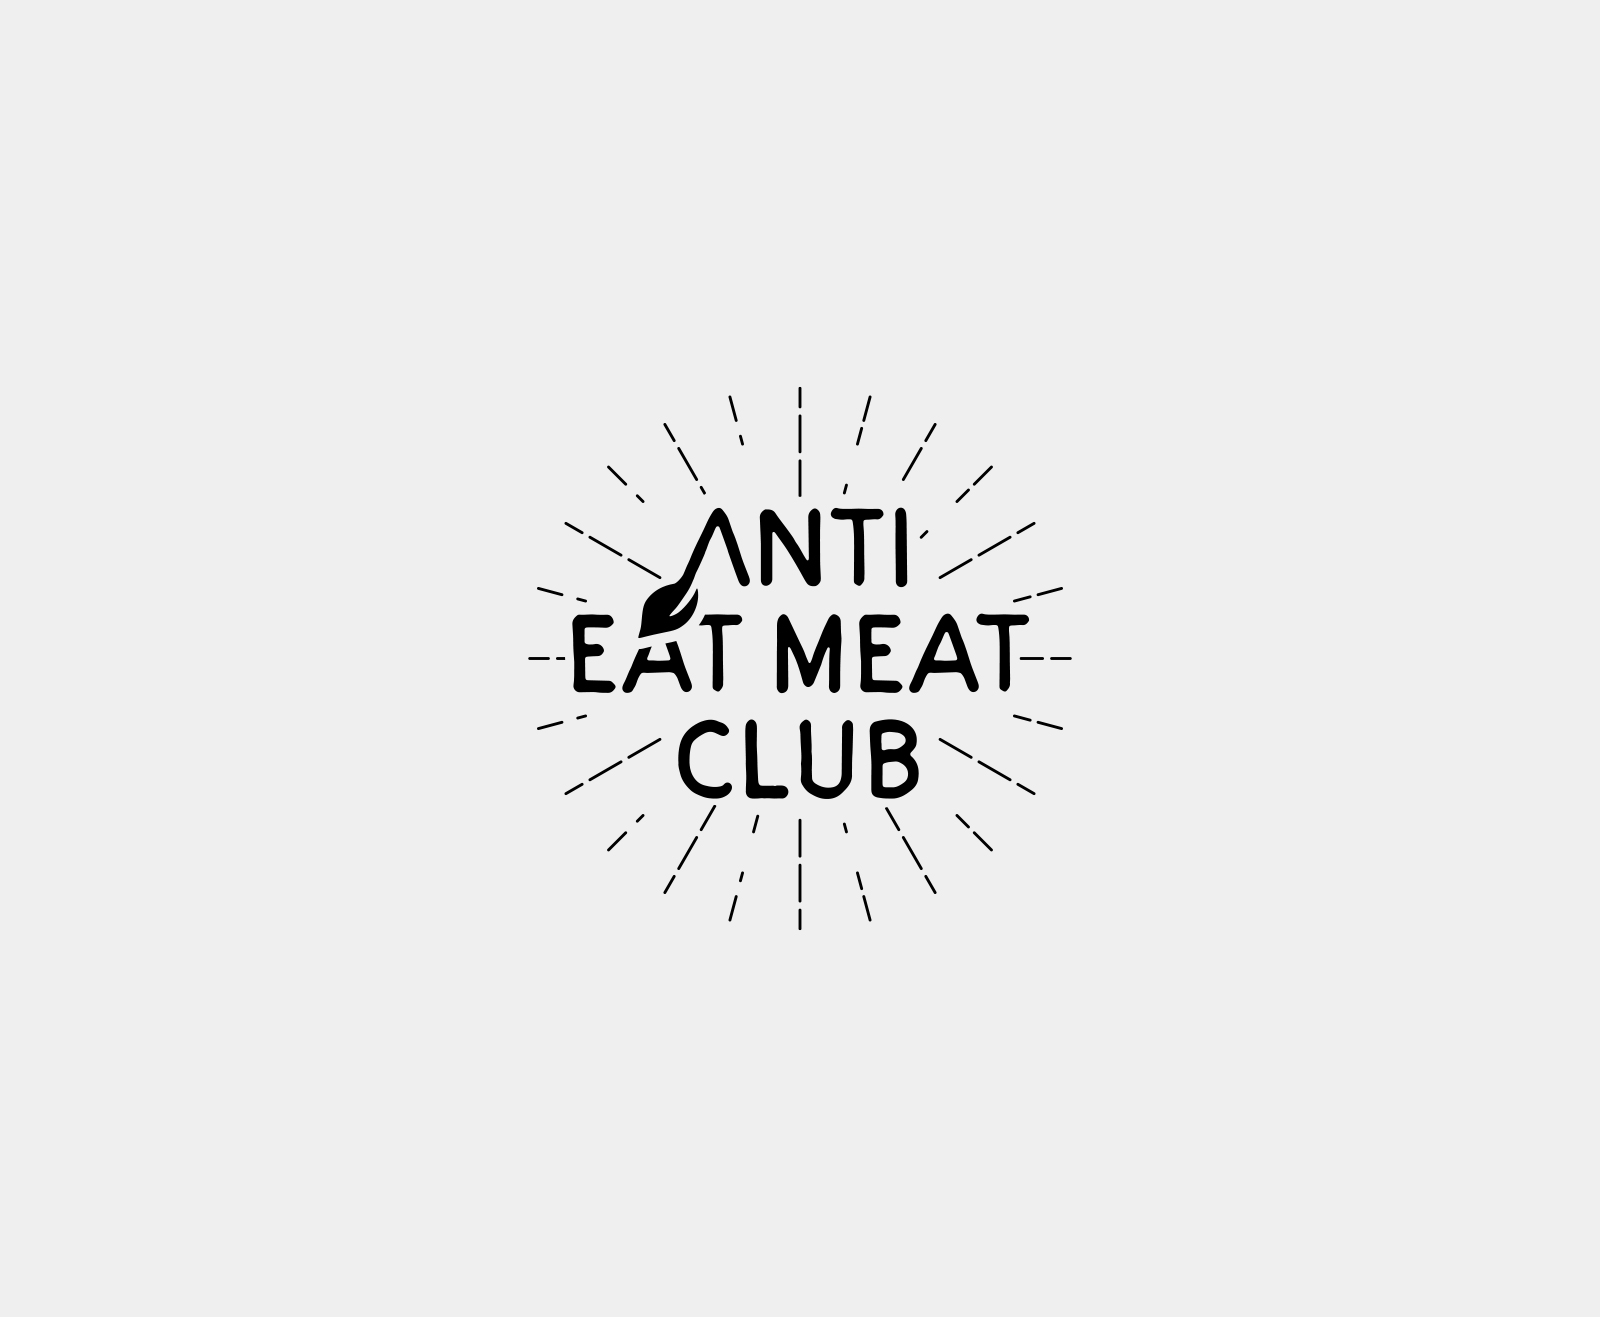 anti-eat-meat-club_logo_design